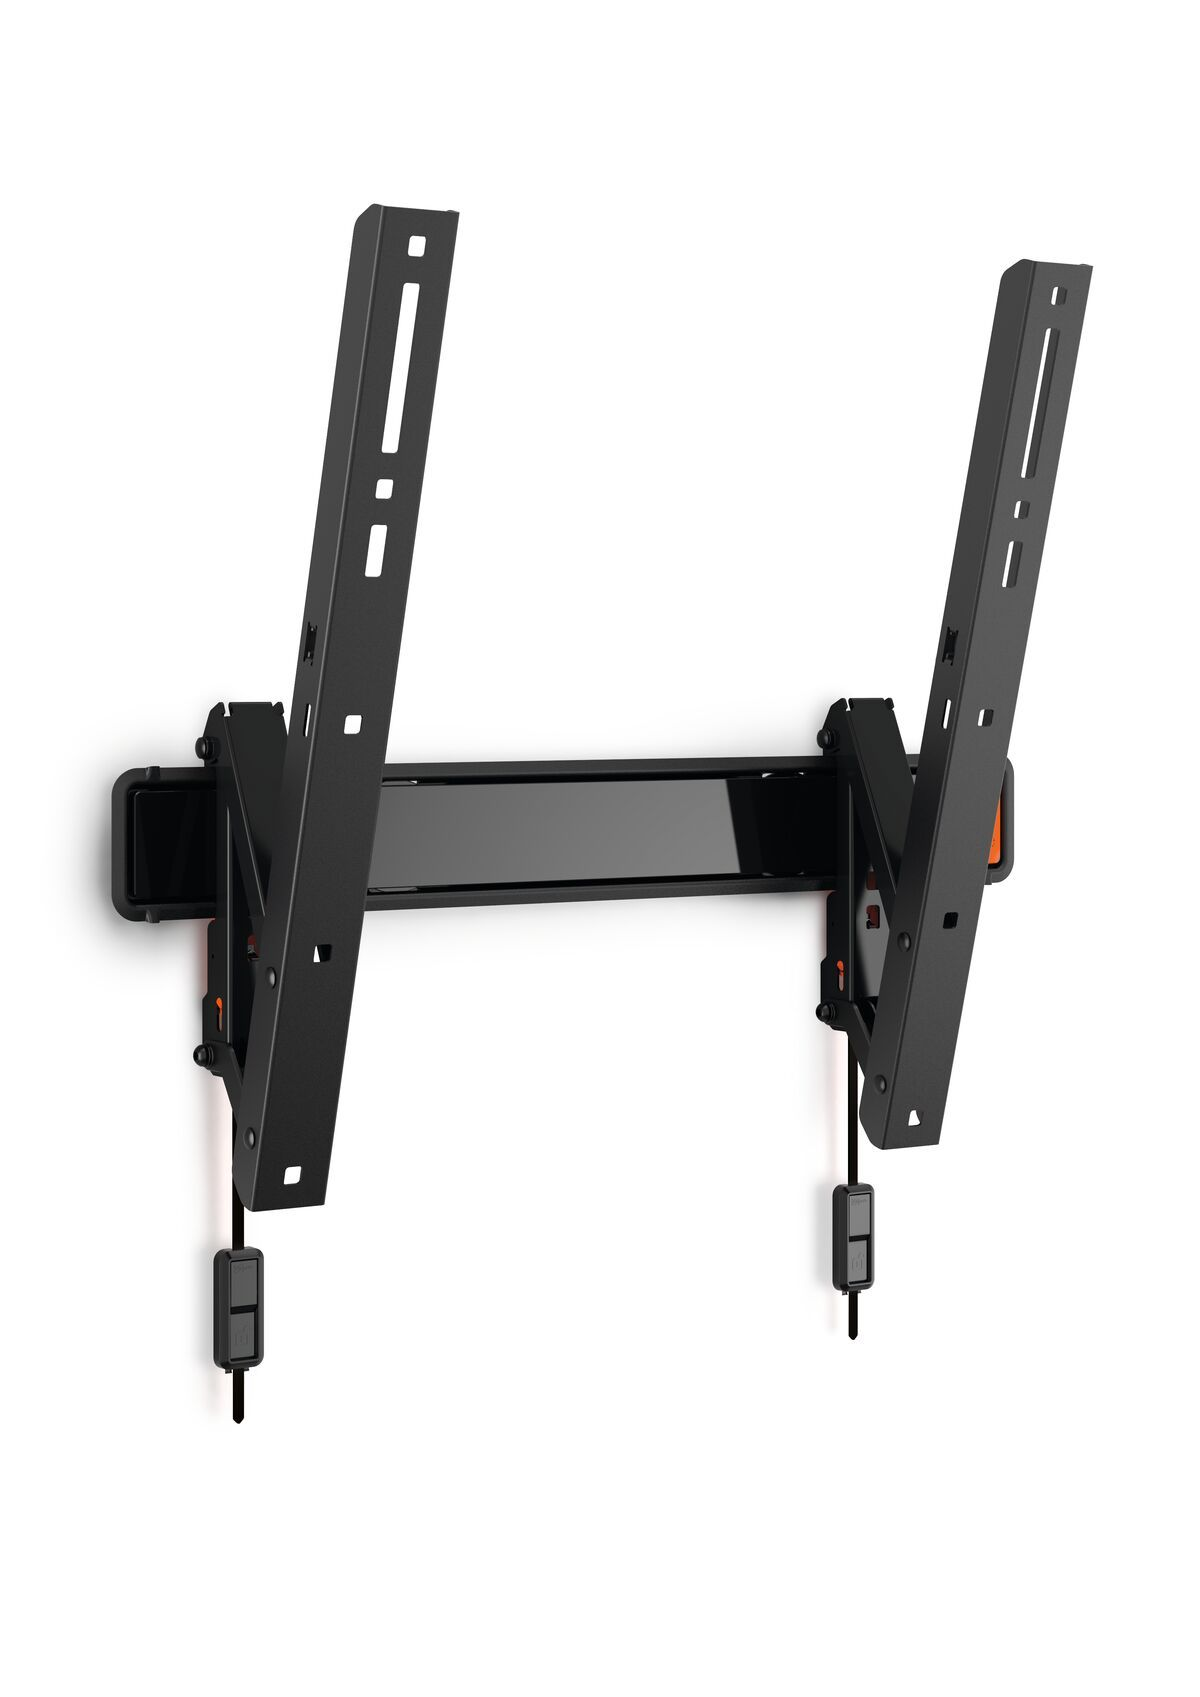 Vogel's WALL 2215 Tilting TV Wall Mount - Suitable for Tilt up to 15° - Suitable for Product